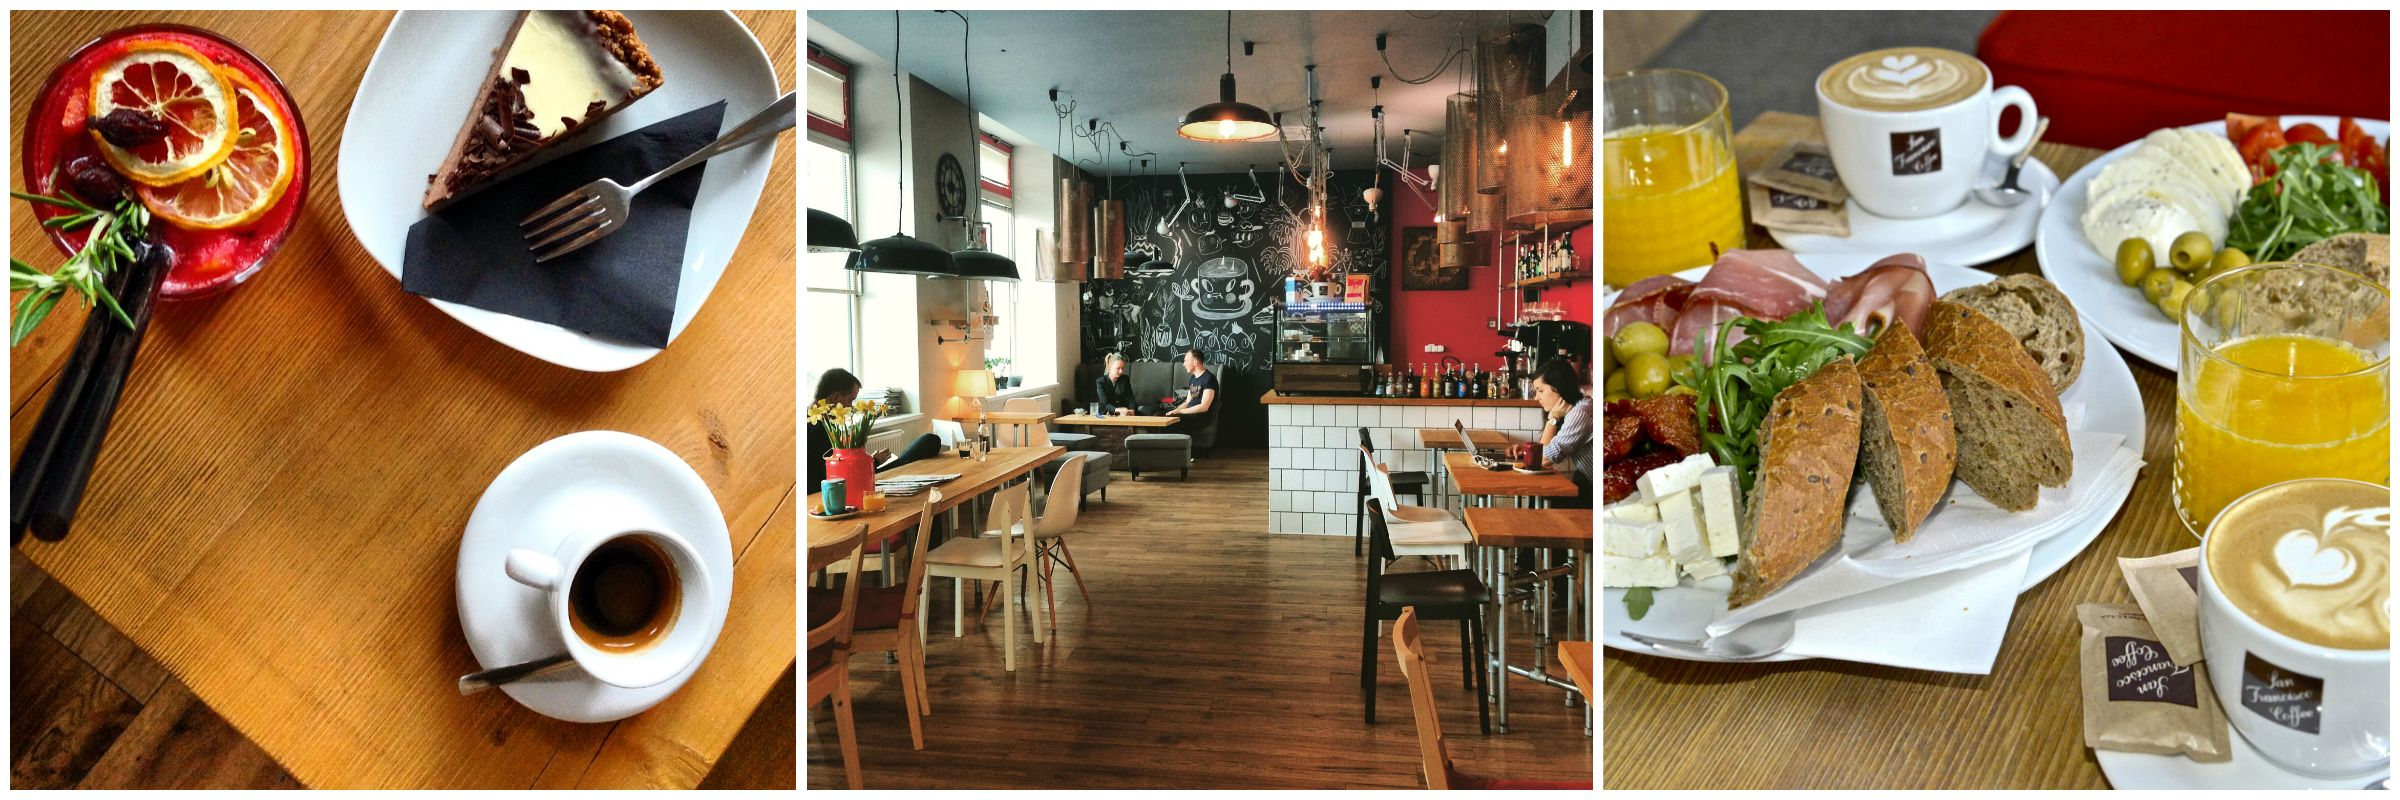 W cafe, FoodCult